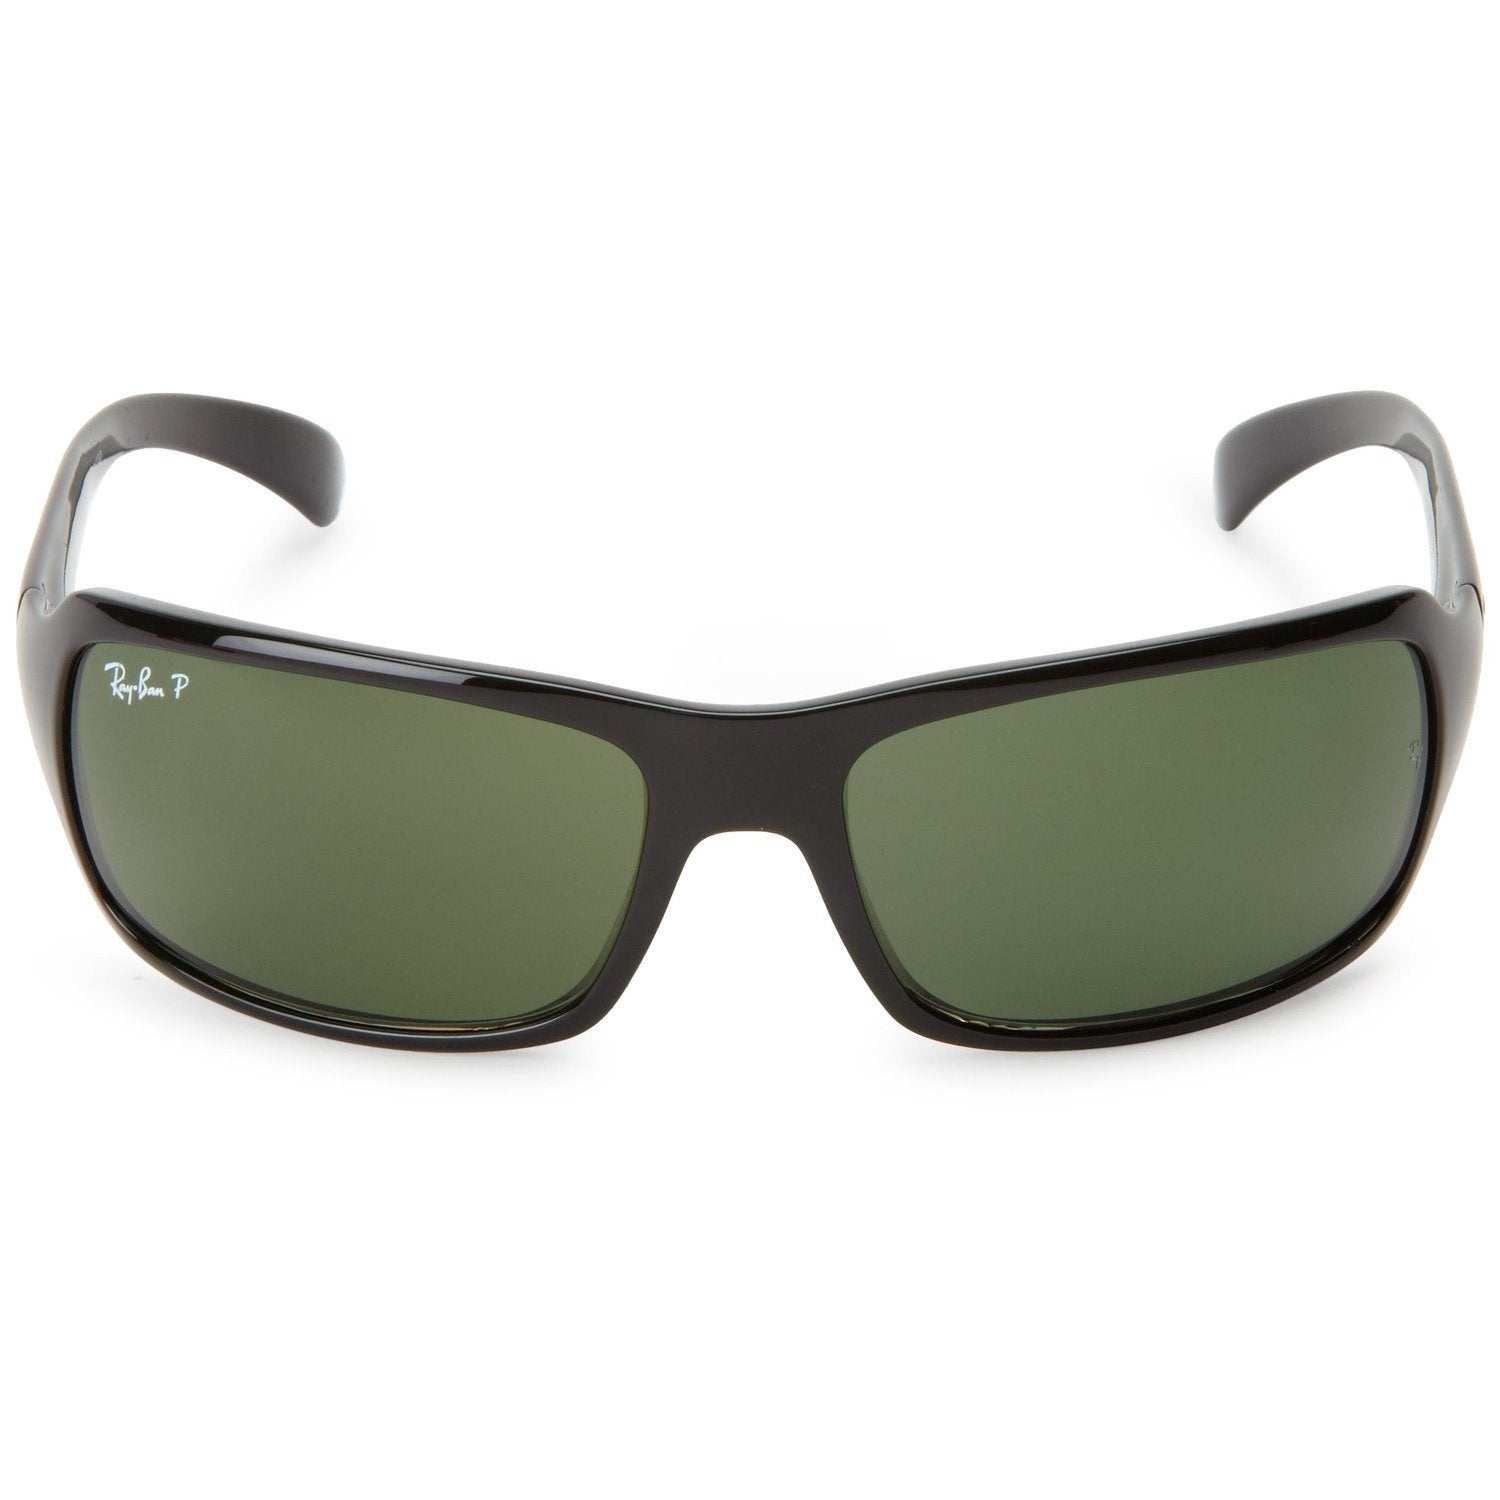 d9d3ebe4b3 Shop Ray-Ban RB4075 601 58 Black Frame Polarized Green 61mm Lens Sunglasses  - Free Shipping Today - Overstock - 14431172